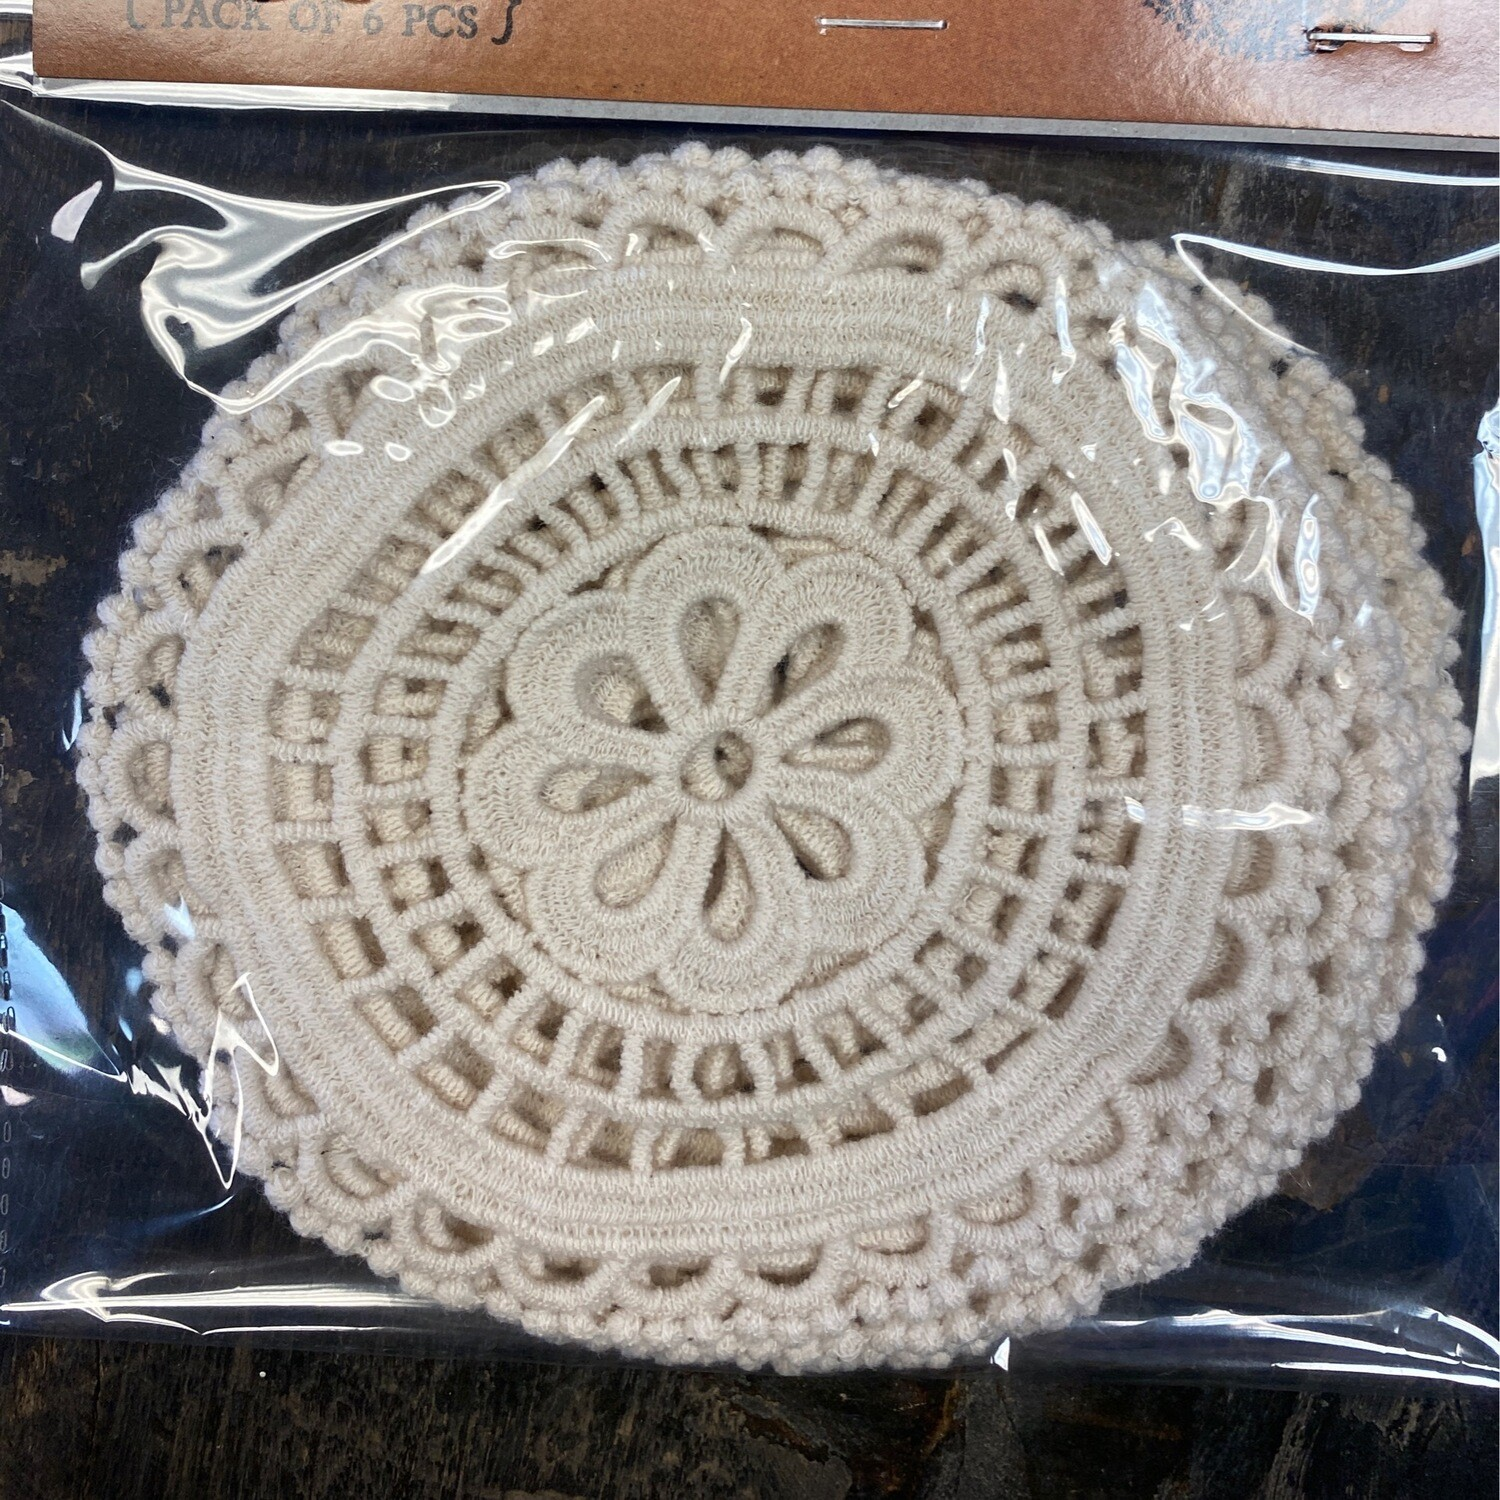 Lace Doily 6 pack